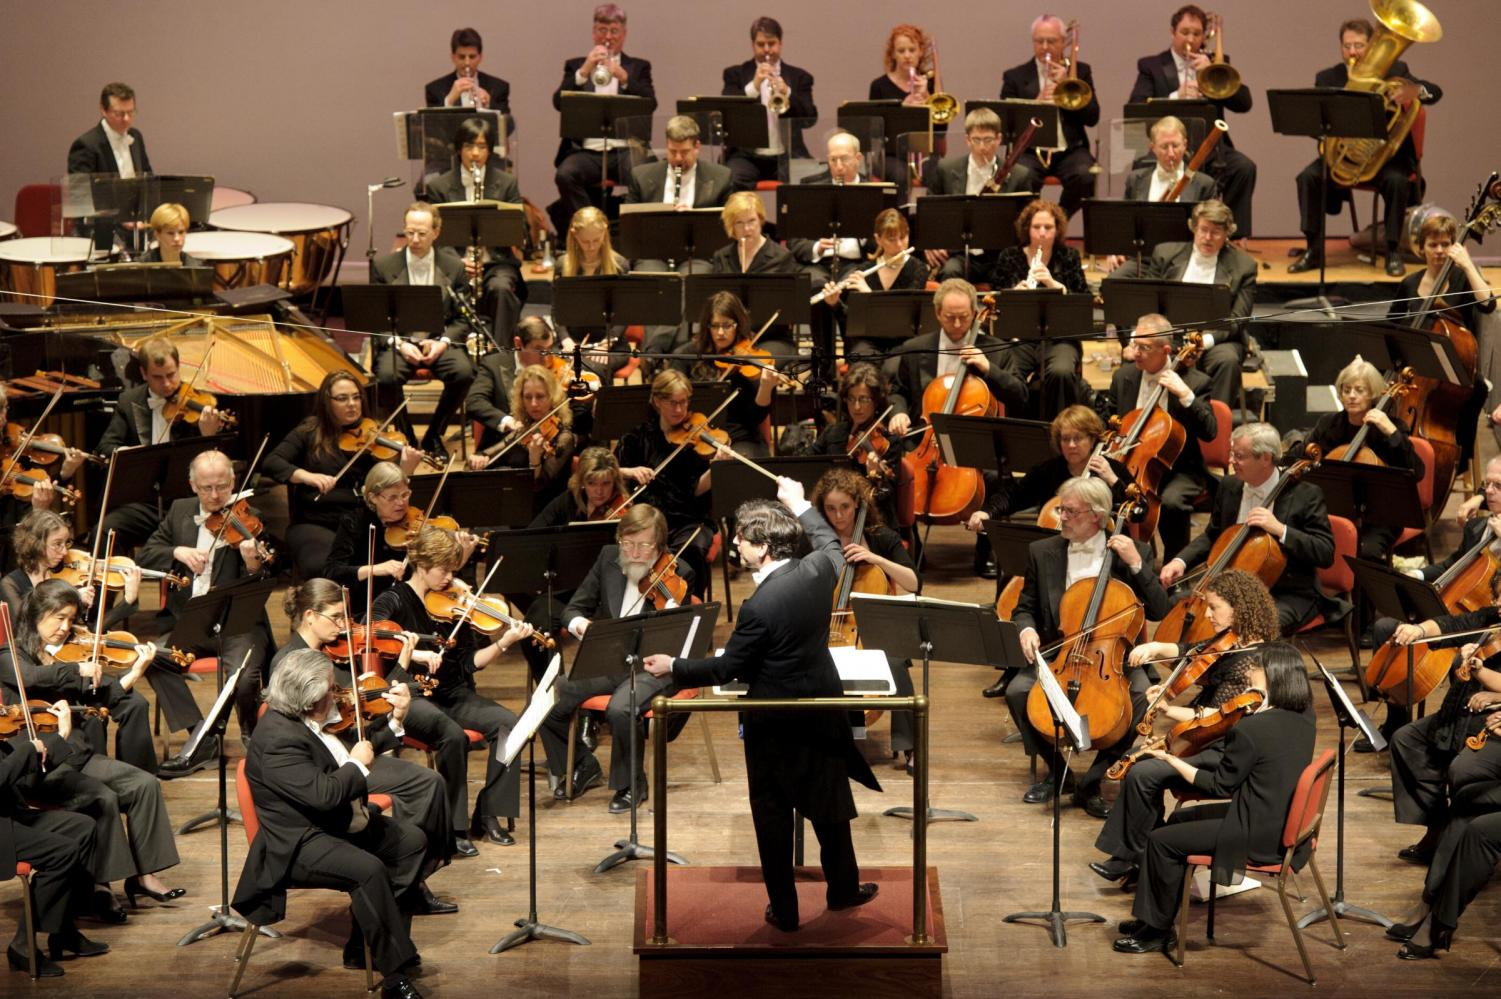 A symphony orchestra, one that could be used for creating a soundtrack. Source: Delaware Public Media